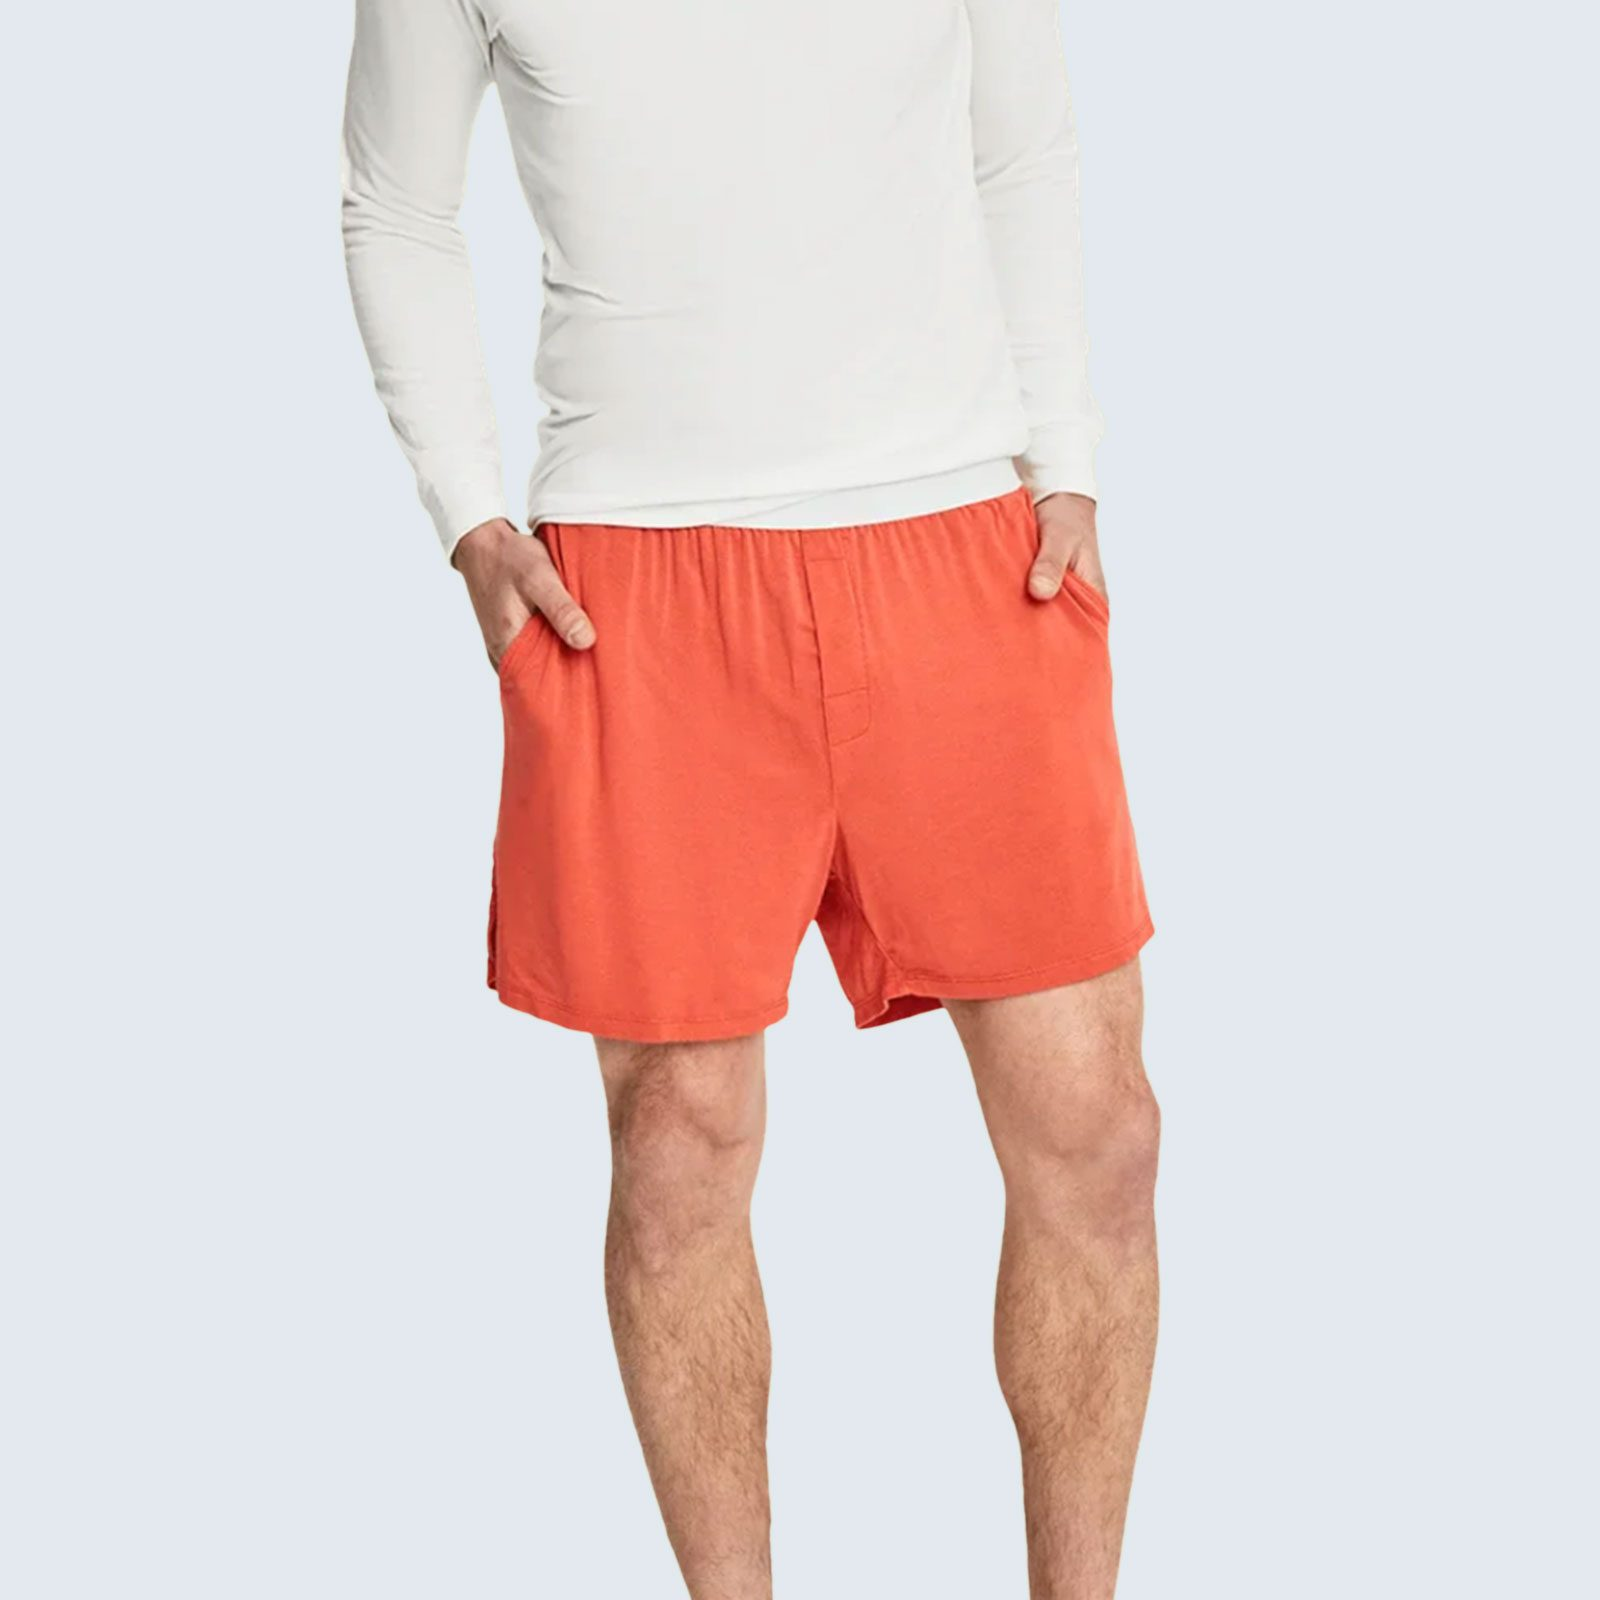 For more comfortable lounging: Jambys Shorts